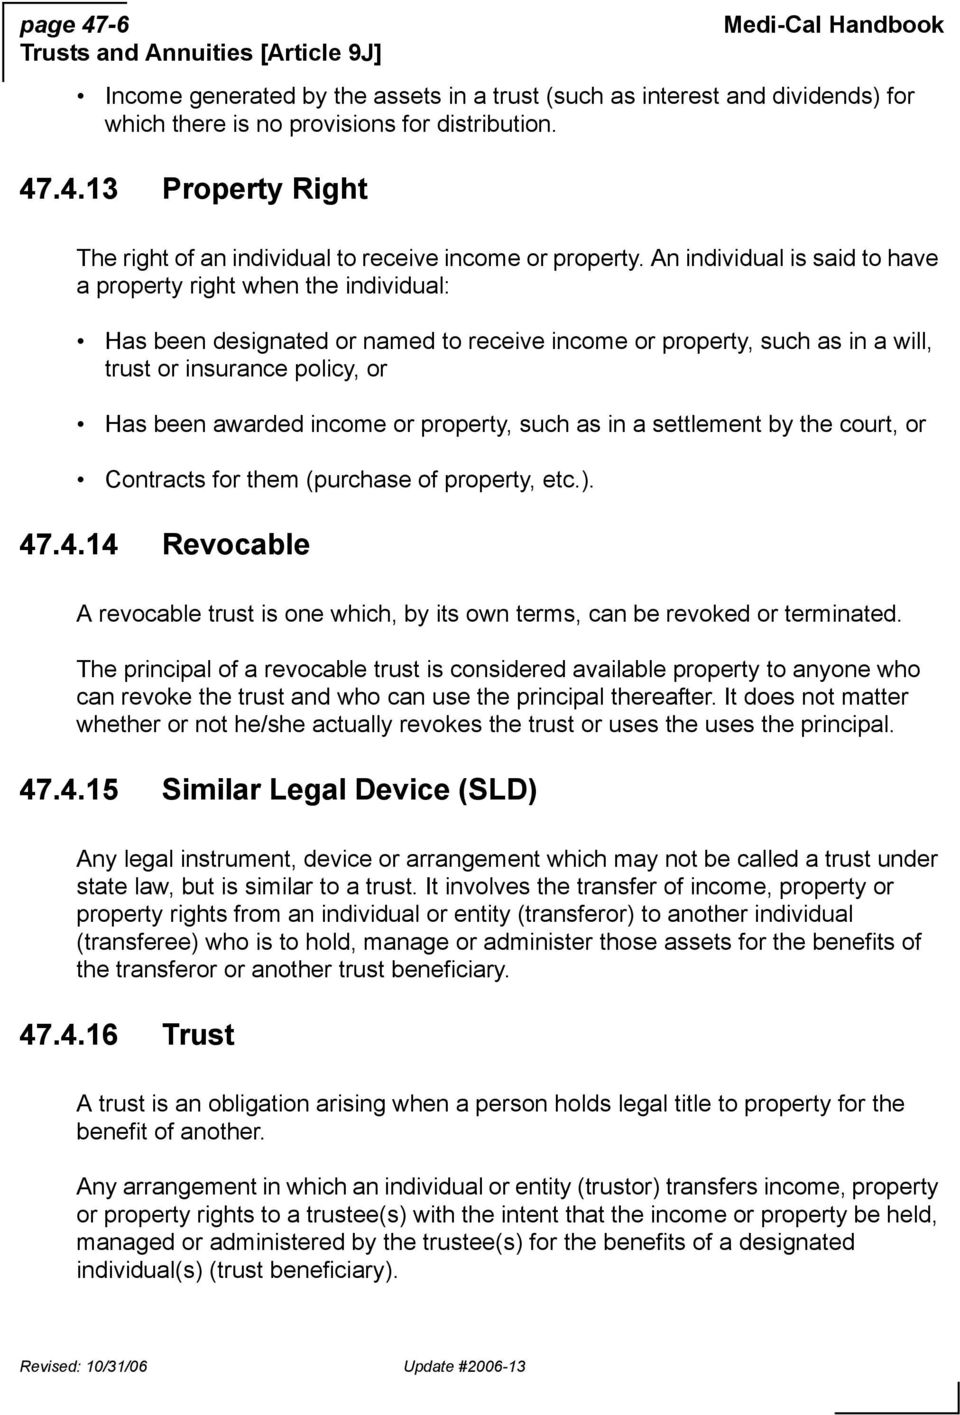 income or property, such as in a settlement by the court, or Contracts for them (purchase of property, etc.). 47